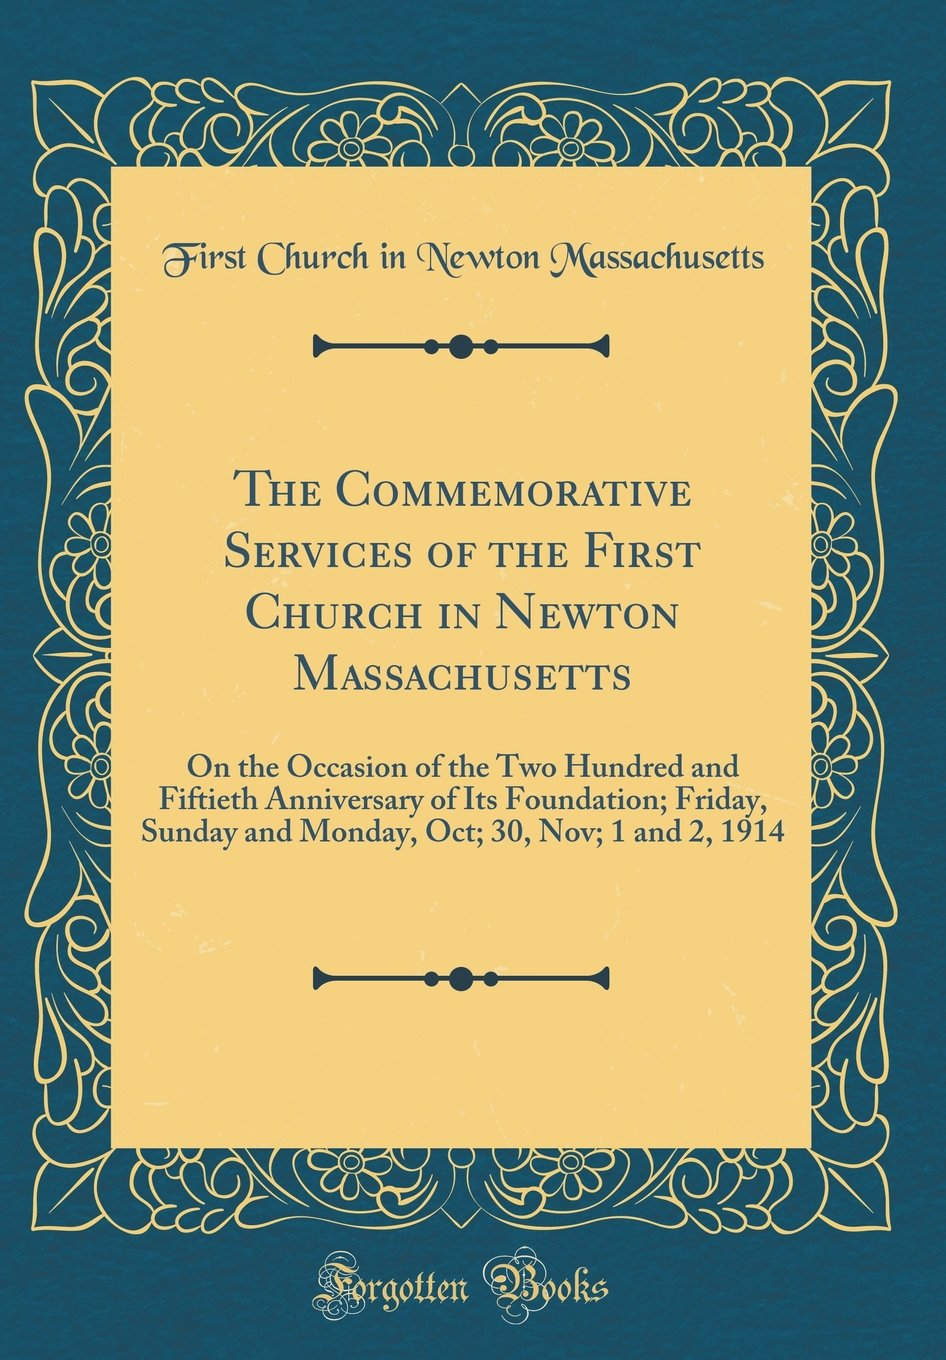 The Commemorative Services of the First Church in Newton Massachusetts: On the Occasion of the Two Hundred and Fiftieth Anniversary of Its Foundation; ... Oct; 30, Nov; 1 and 2, 1914 (Classic Reprint) pdf